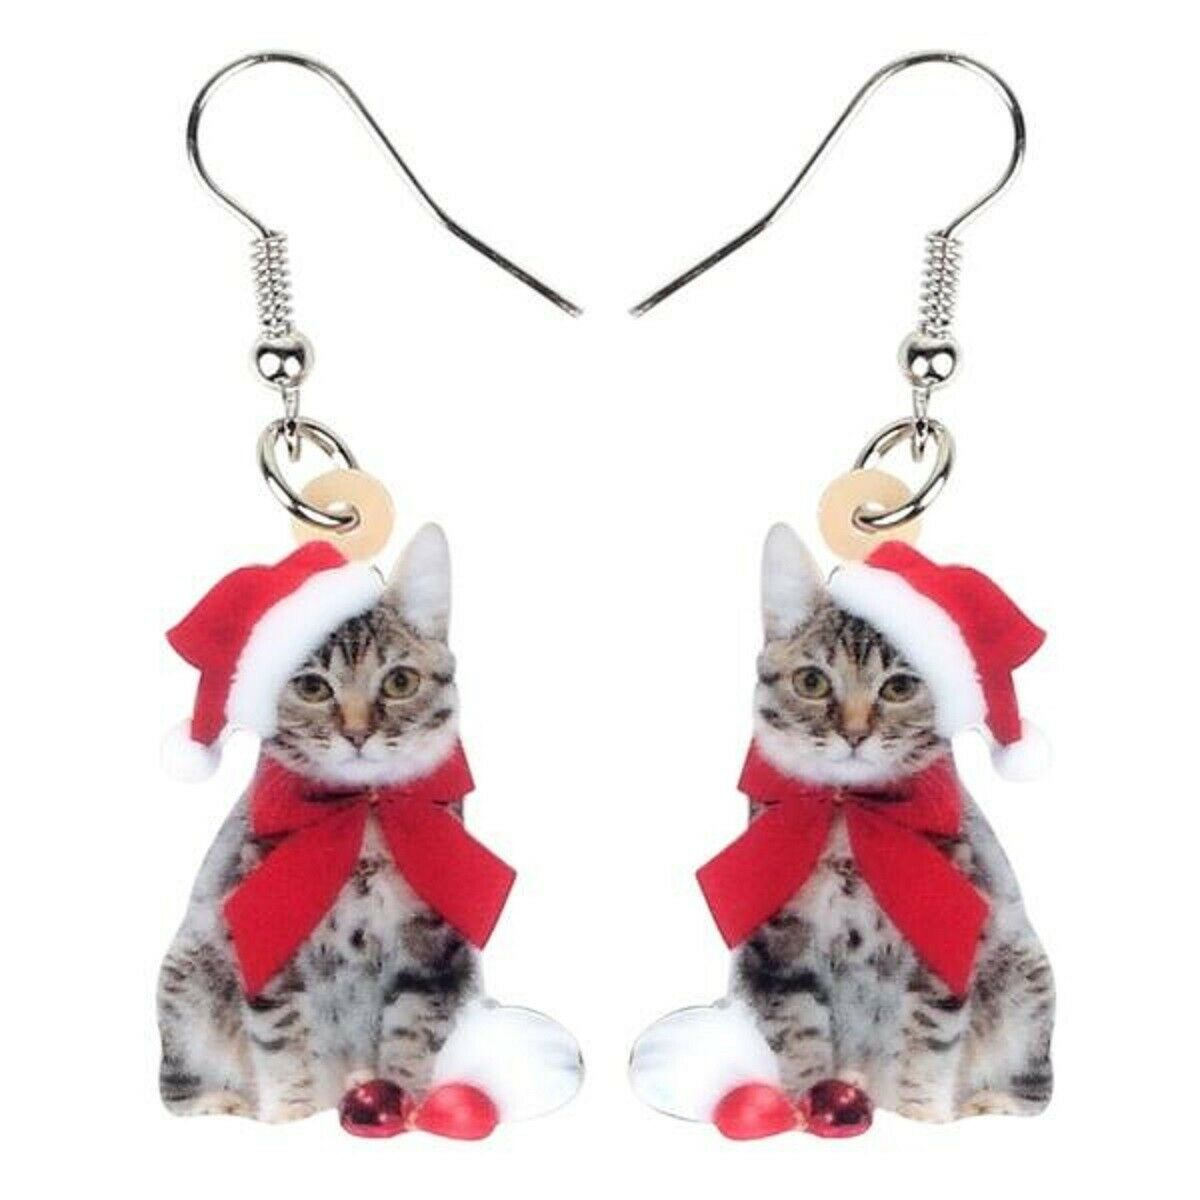 Red Acrylic Christmas Kitten Earrings - One Pair with Random Design and Color